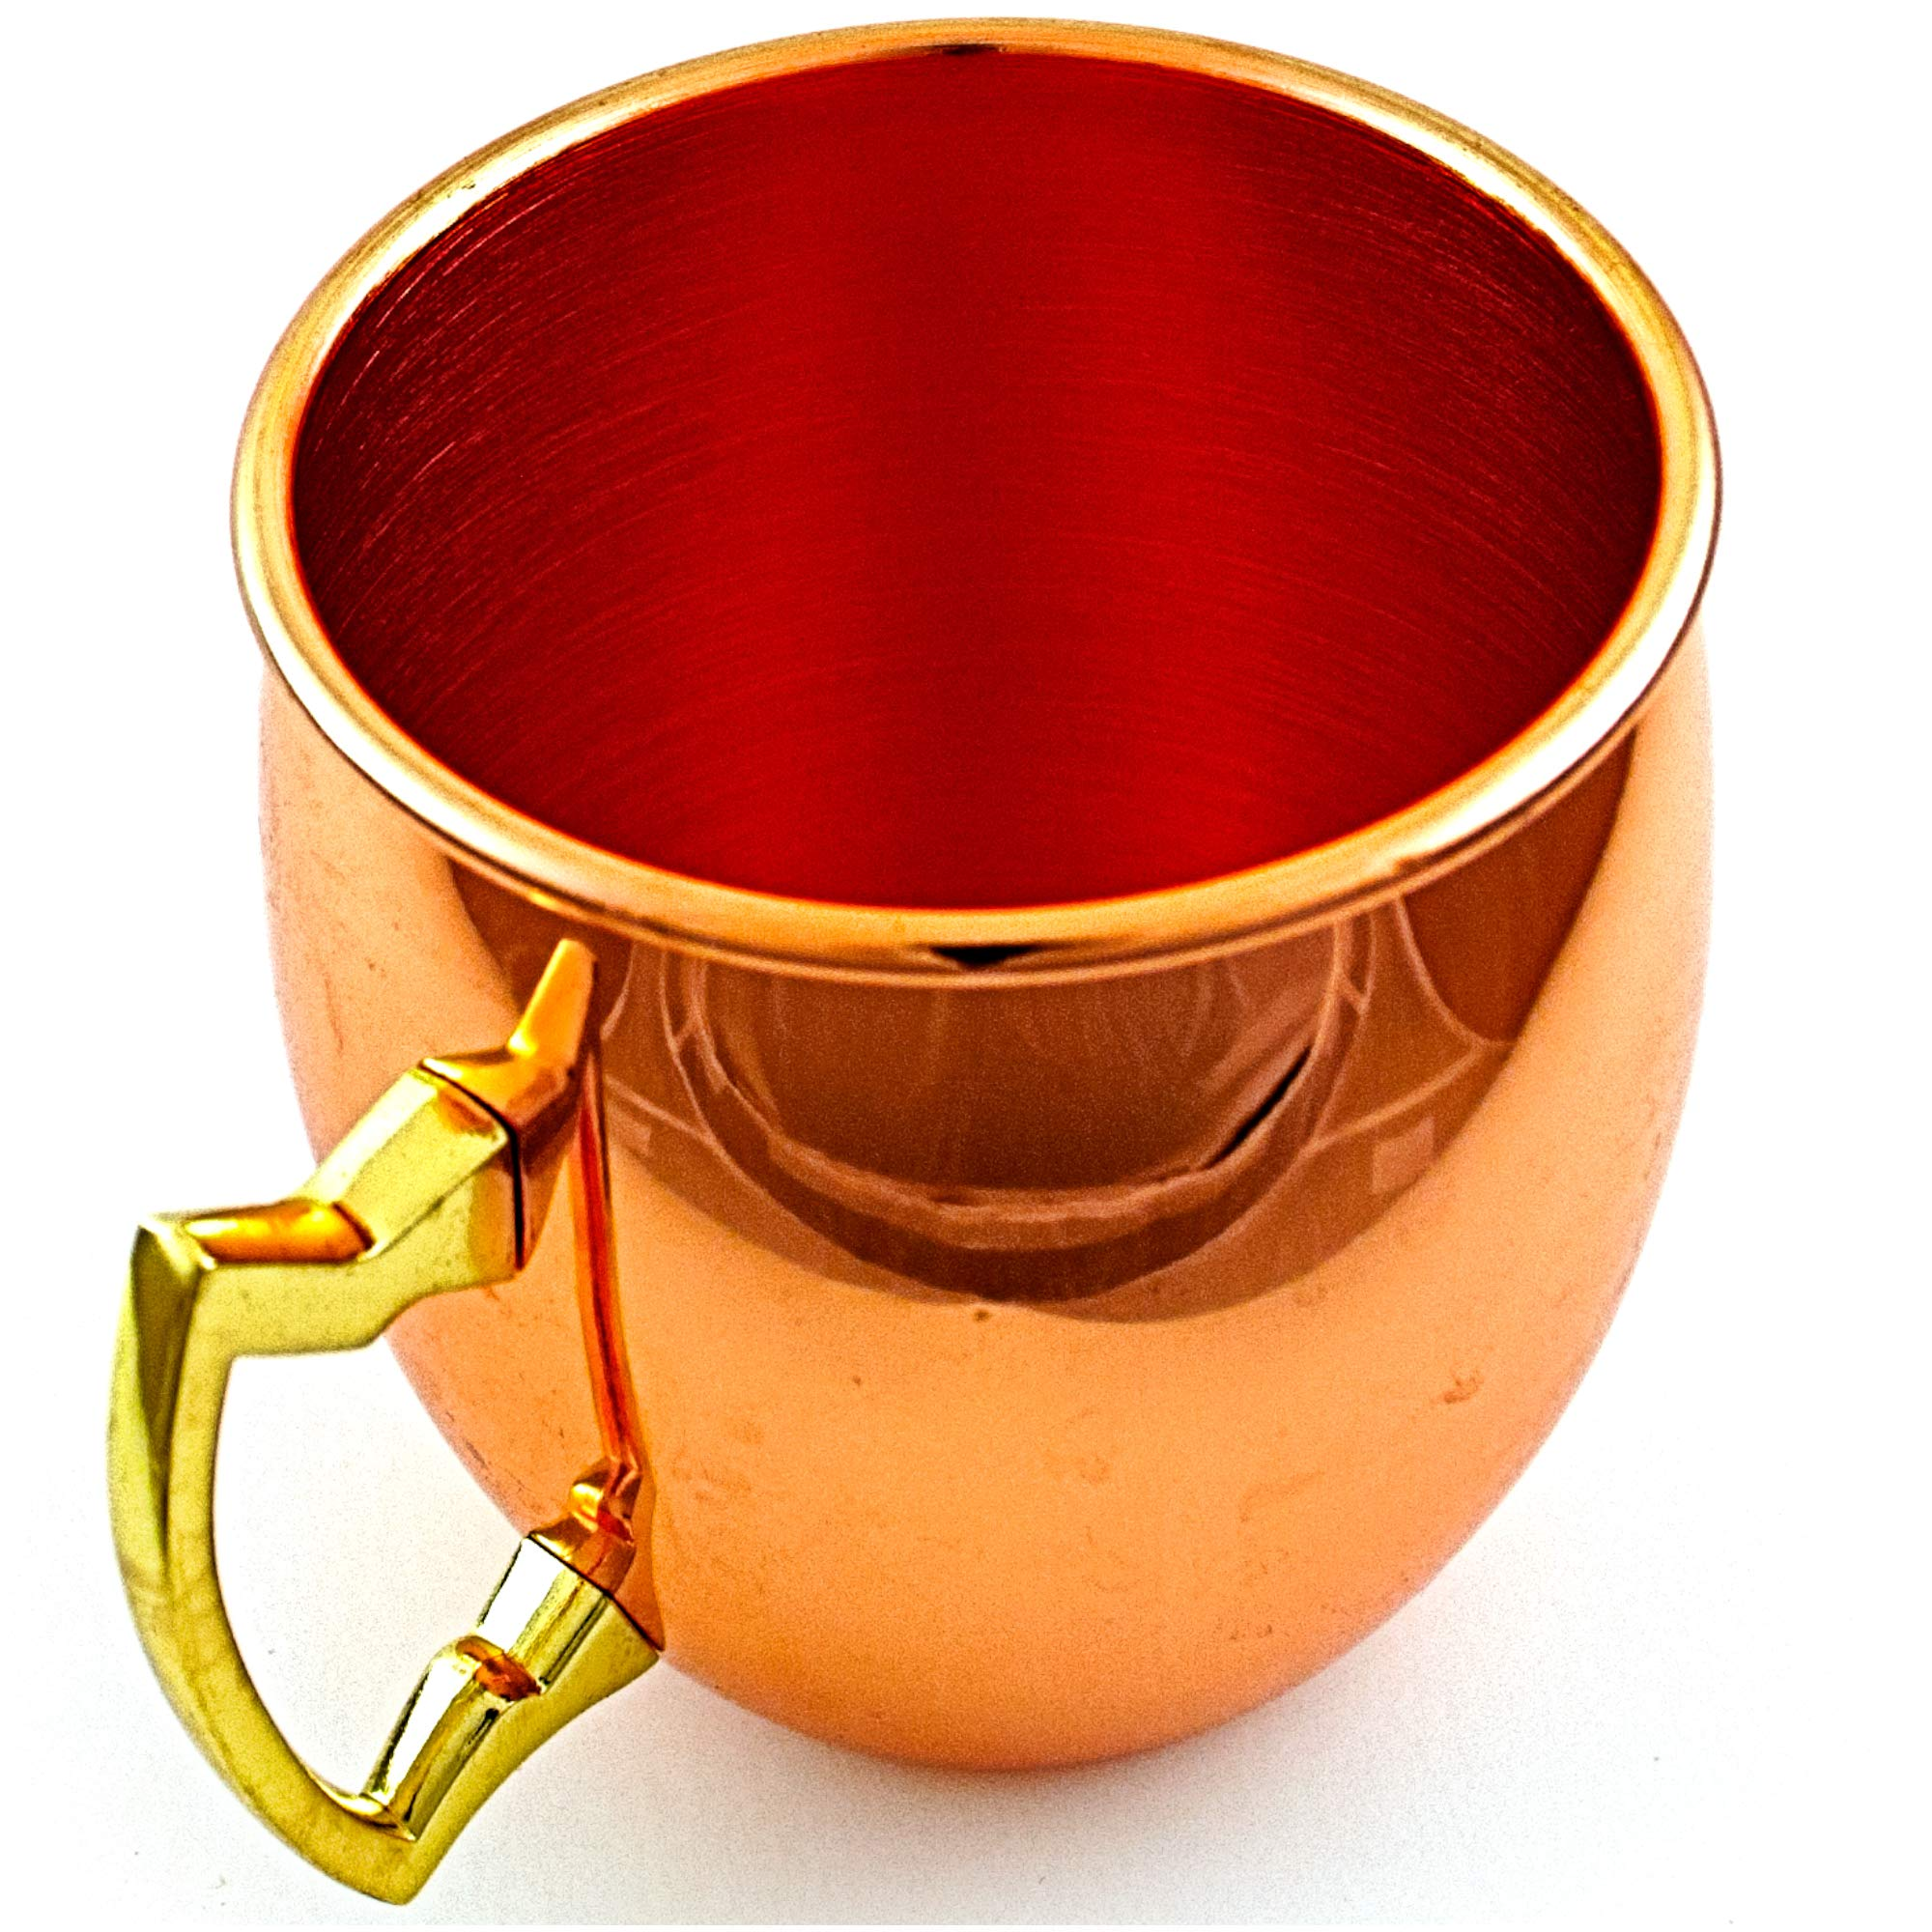 Moscow Mule Copper Mug by Small Old City FoodSafe Pure Solid Coffee Mug - 16 oz Capacity - Smooth Exterior - No Tin or Nickel Lining - Welded Handle - Ideal for Warm & Cold Beverages